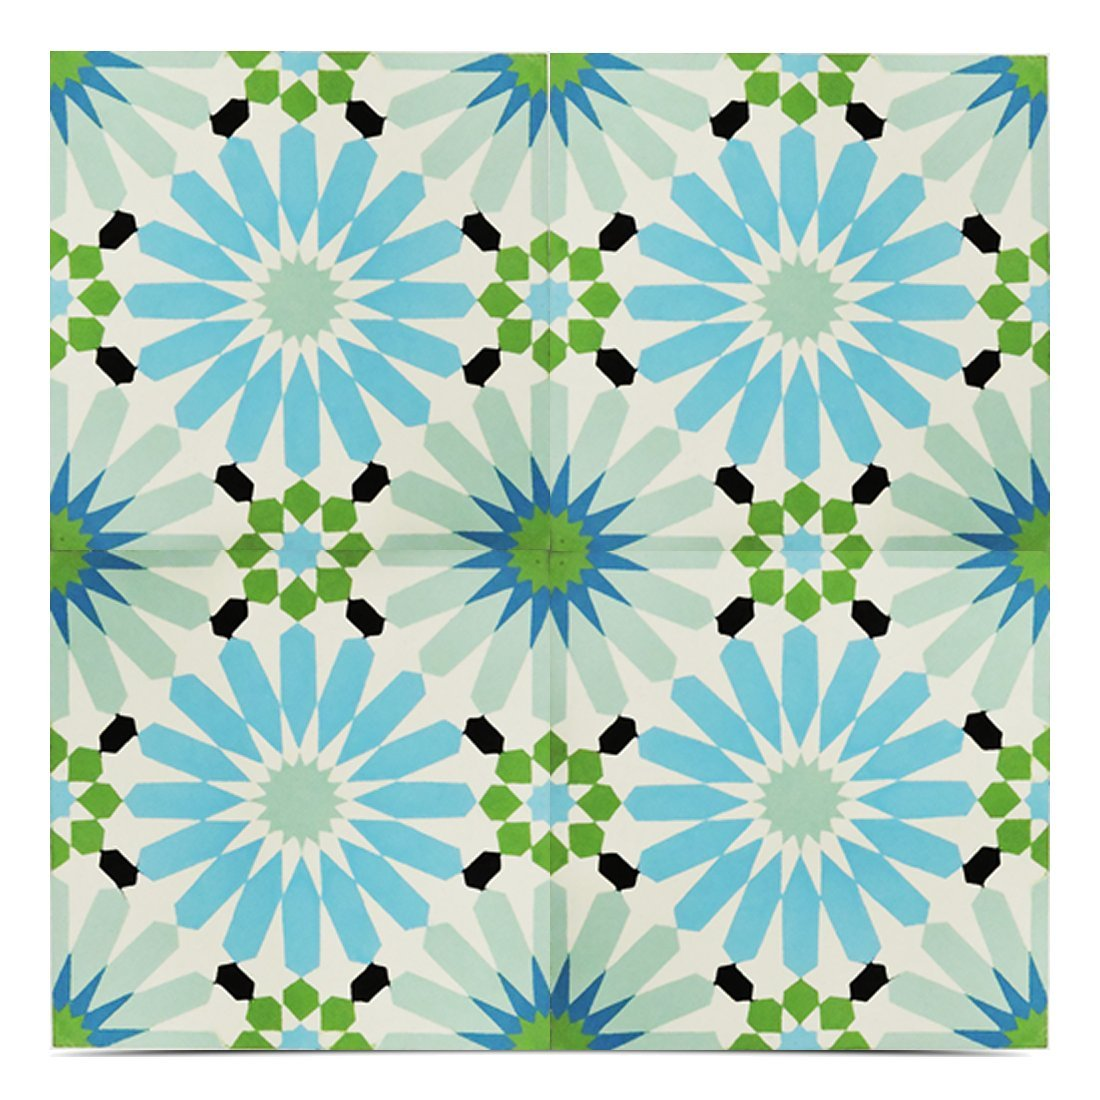 Moroccan Mosaic & Tile House CTP54-06 Alhambra 8x8 Inch Handmade Cement Tile in Multicolor (Pack of 12)